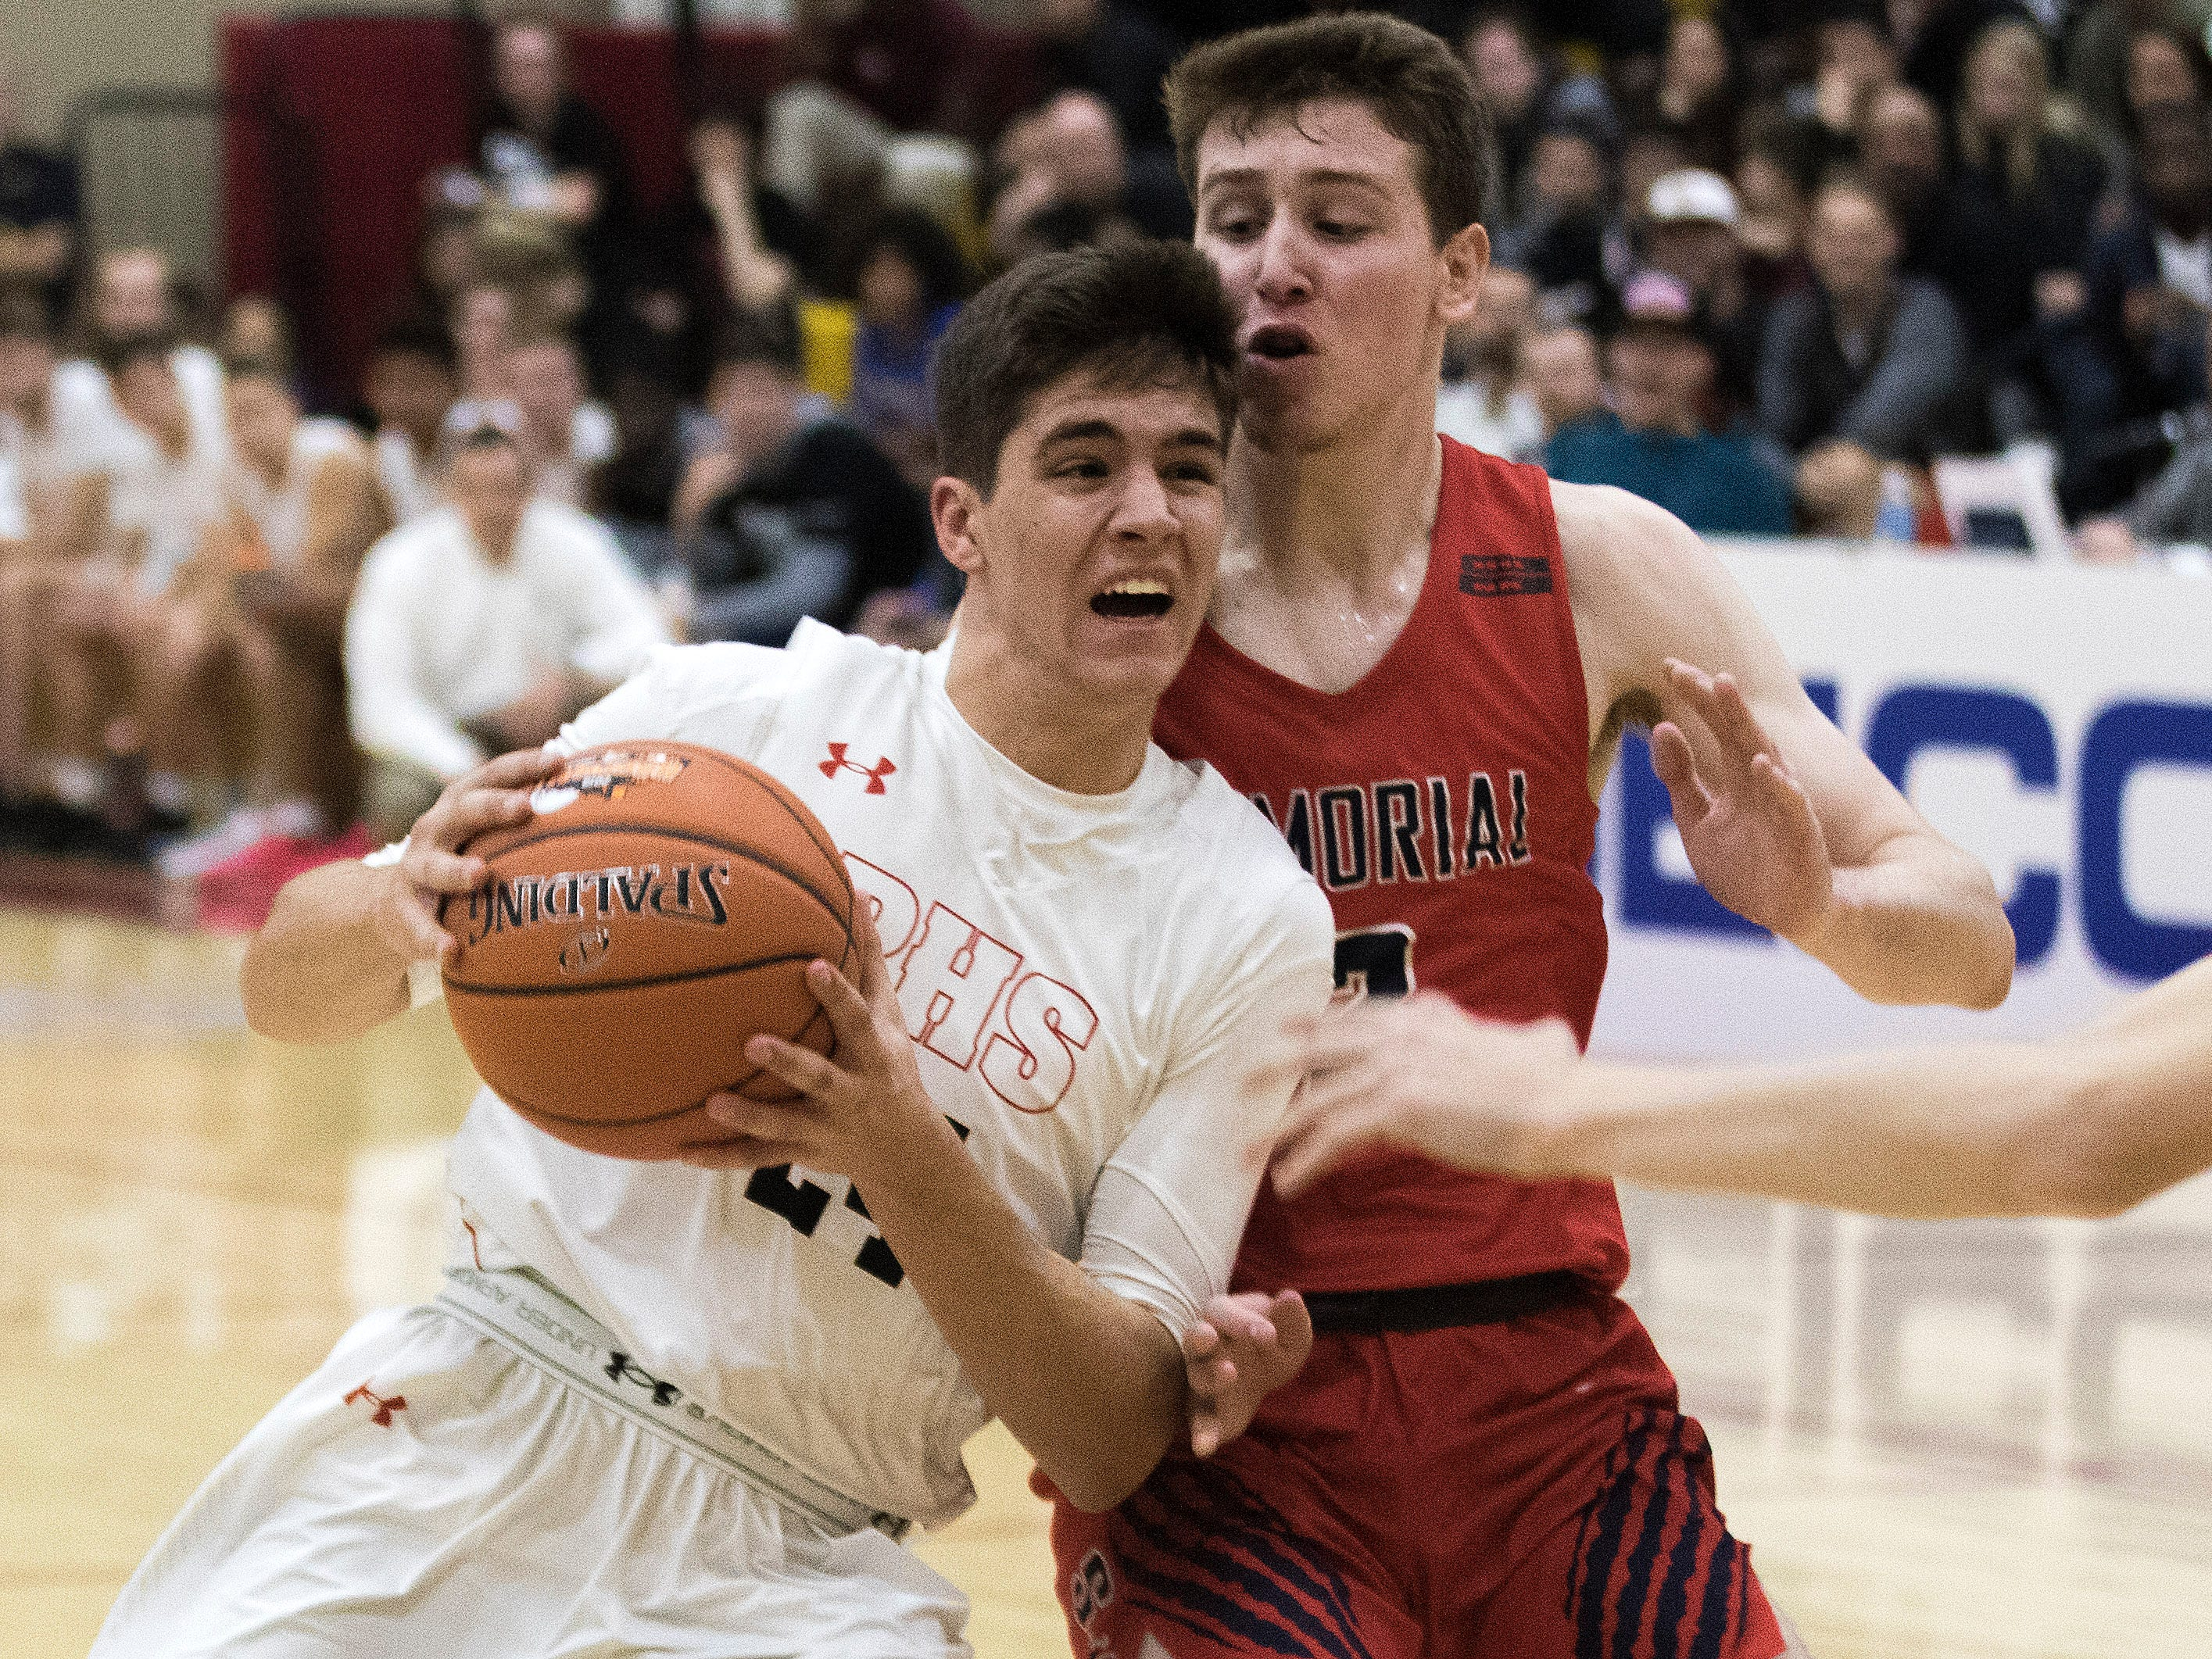 Pinnacle's Trent Brown (24) drives to the basket against San Joaquin Memorial's Kyle Micheli during in the first half of their game in Scottsdale, Thurs, Dec. 6, 2018.